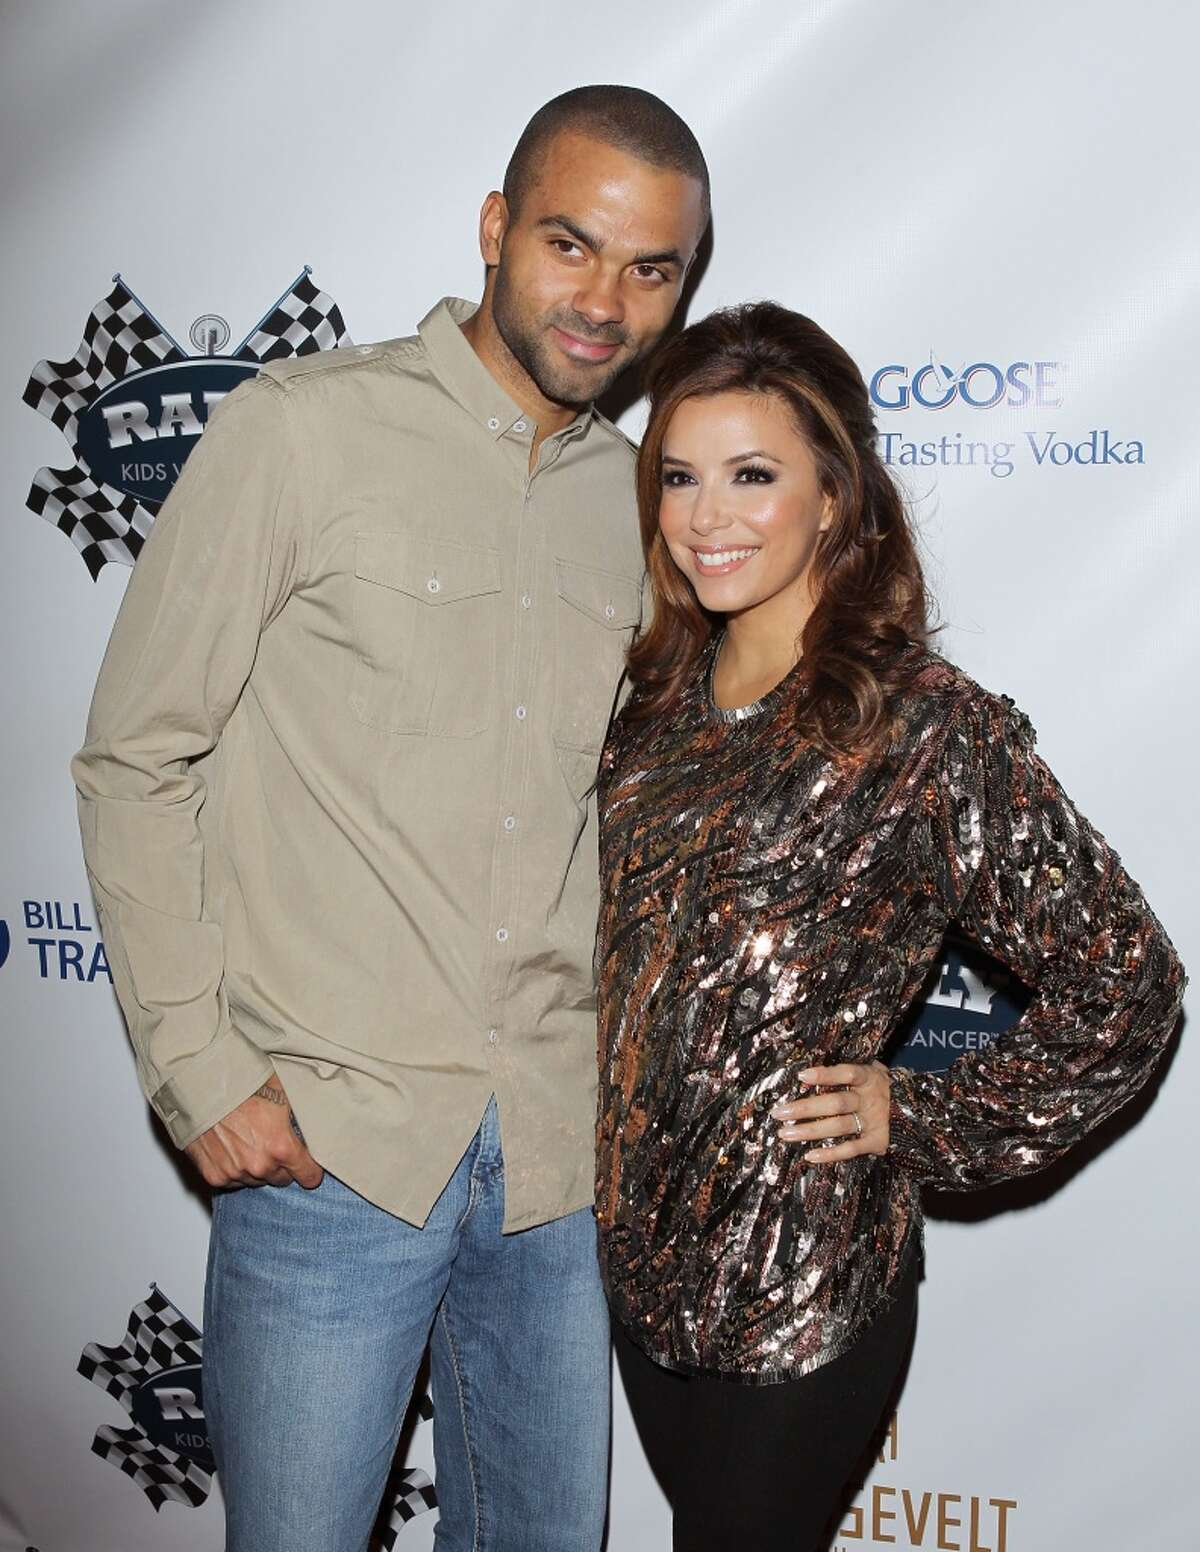 Tony Parker and Eva Longoria The pair married from 2007-2010. Their marriage was rocked from the beginning by rumors of Parker's infidelity, confirmed in 2010 by Erin Berry, wife of Parker's former teammate Brent Barry, who admitted to a relationship with Parker.